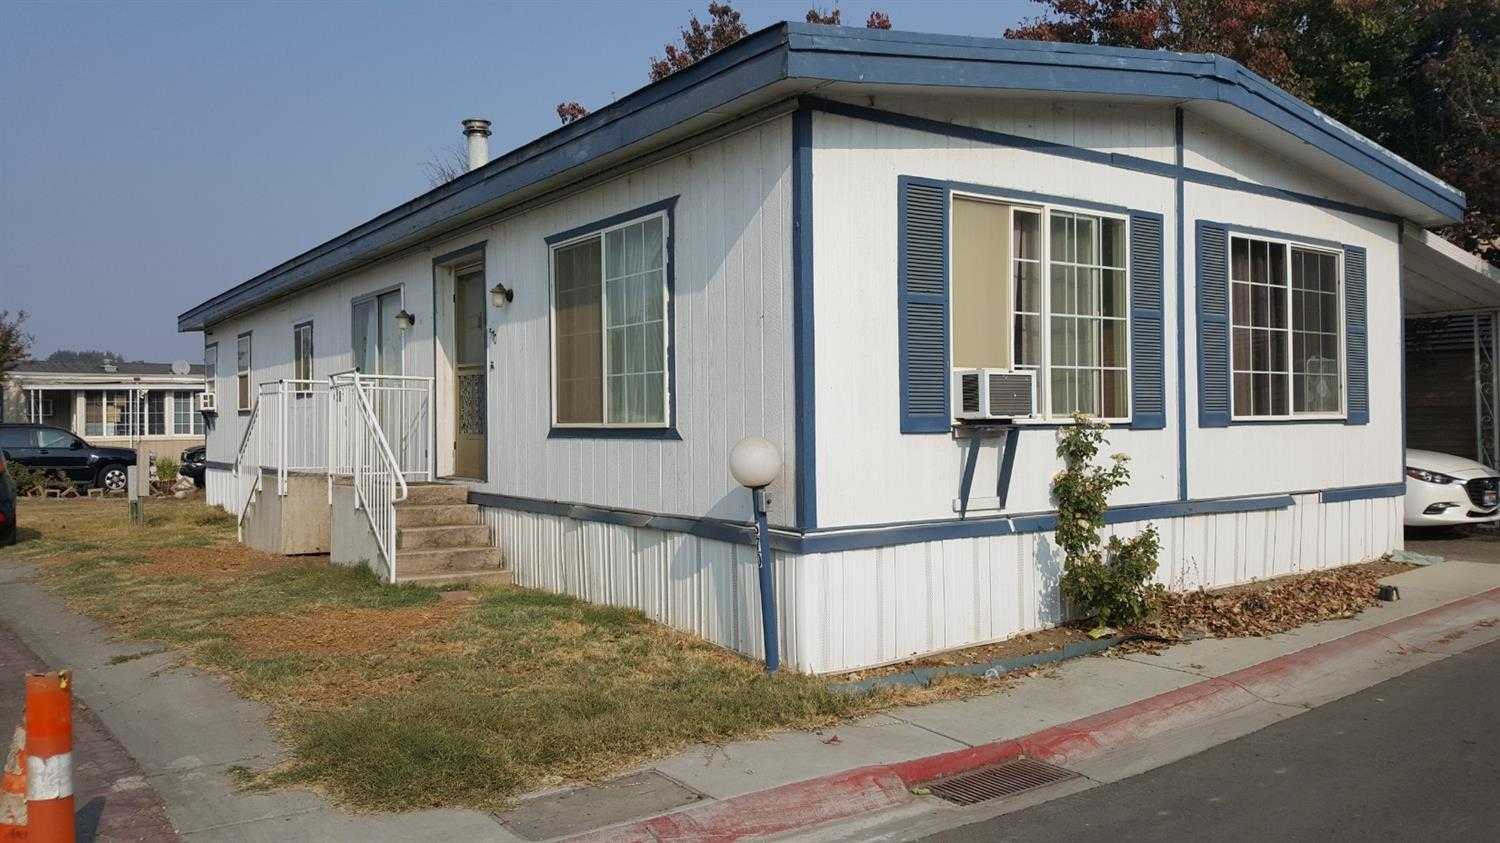 $45,000 - 2Br/2Ba -  for Sale in Davis